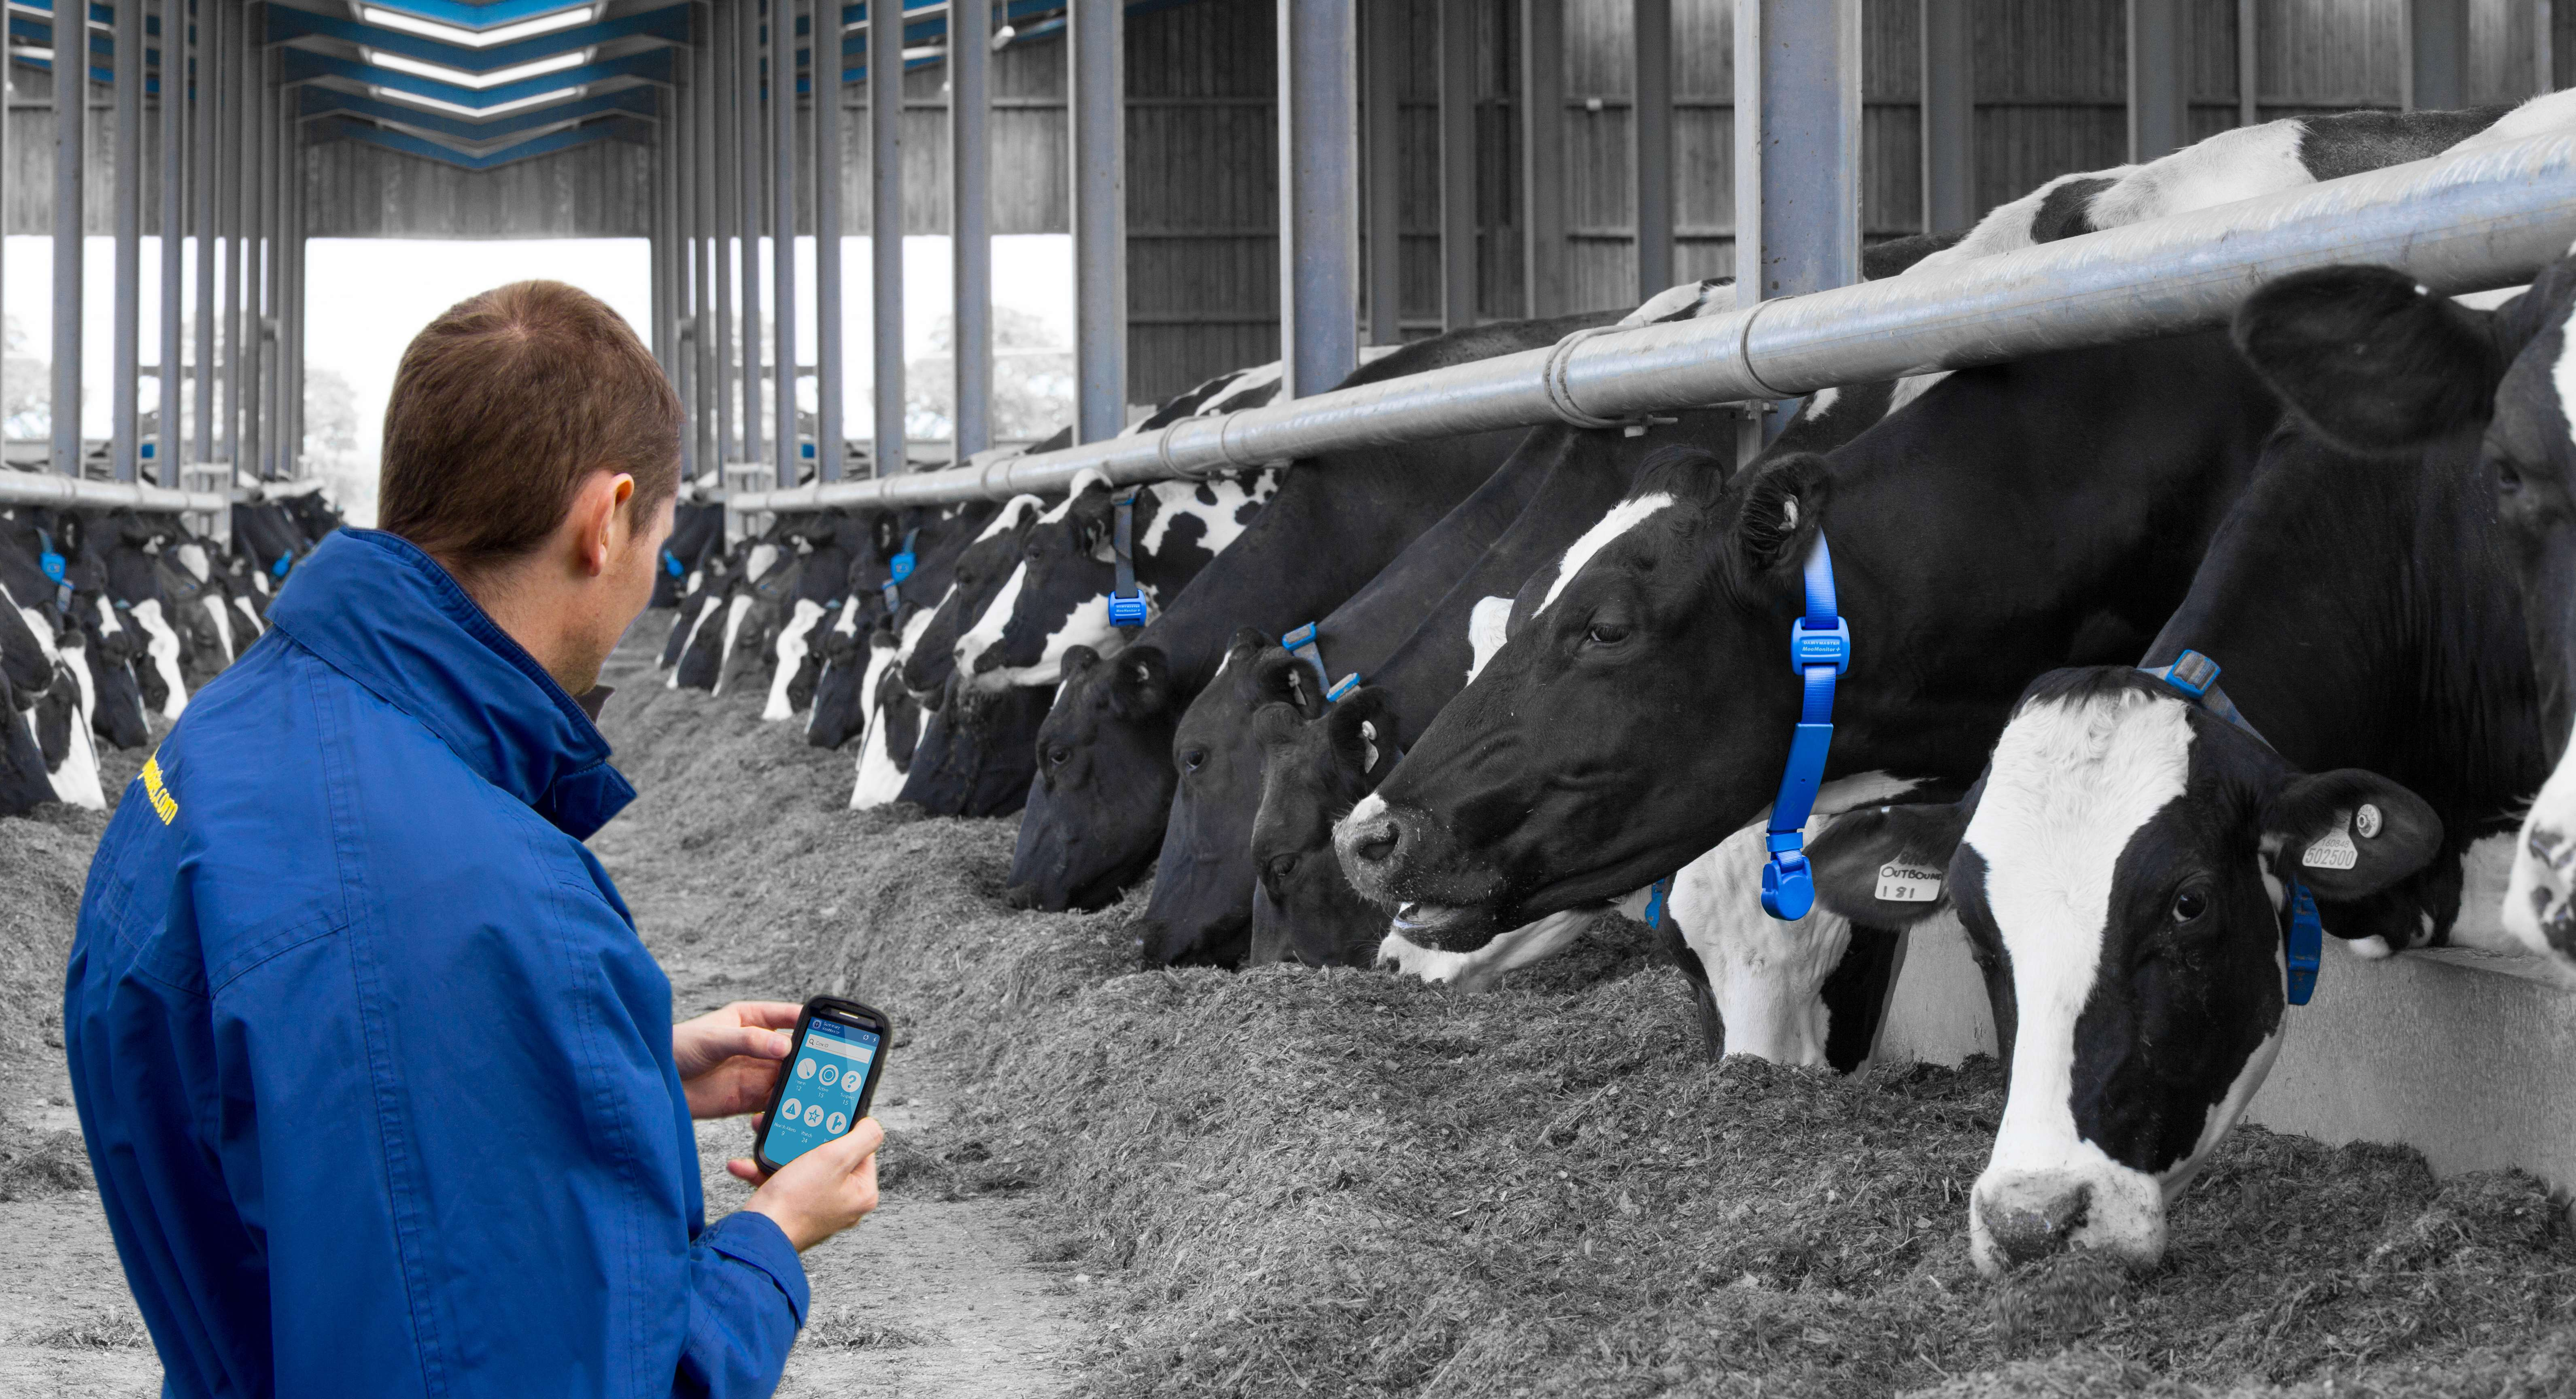 The Moo Monitor is a collar that fits around every cow's neck and tells farmers on mobile devices when the best time to milk an individual cow is. Credit: Dairymaster.